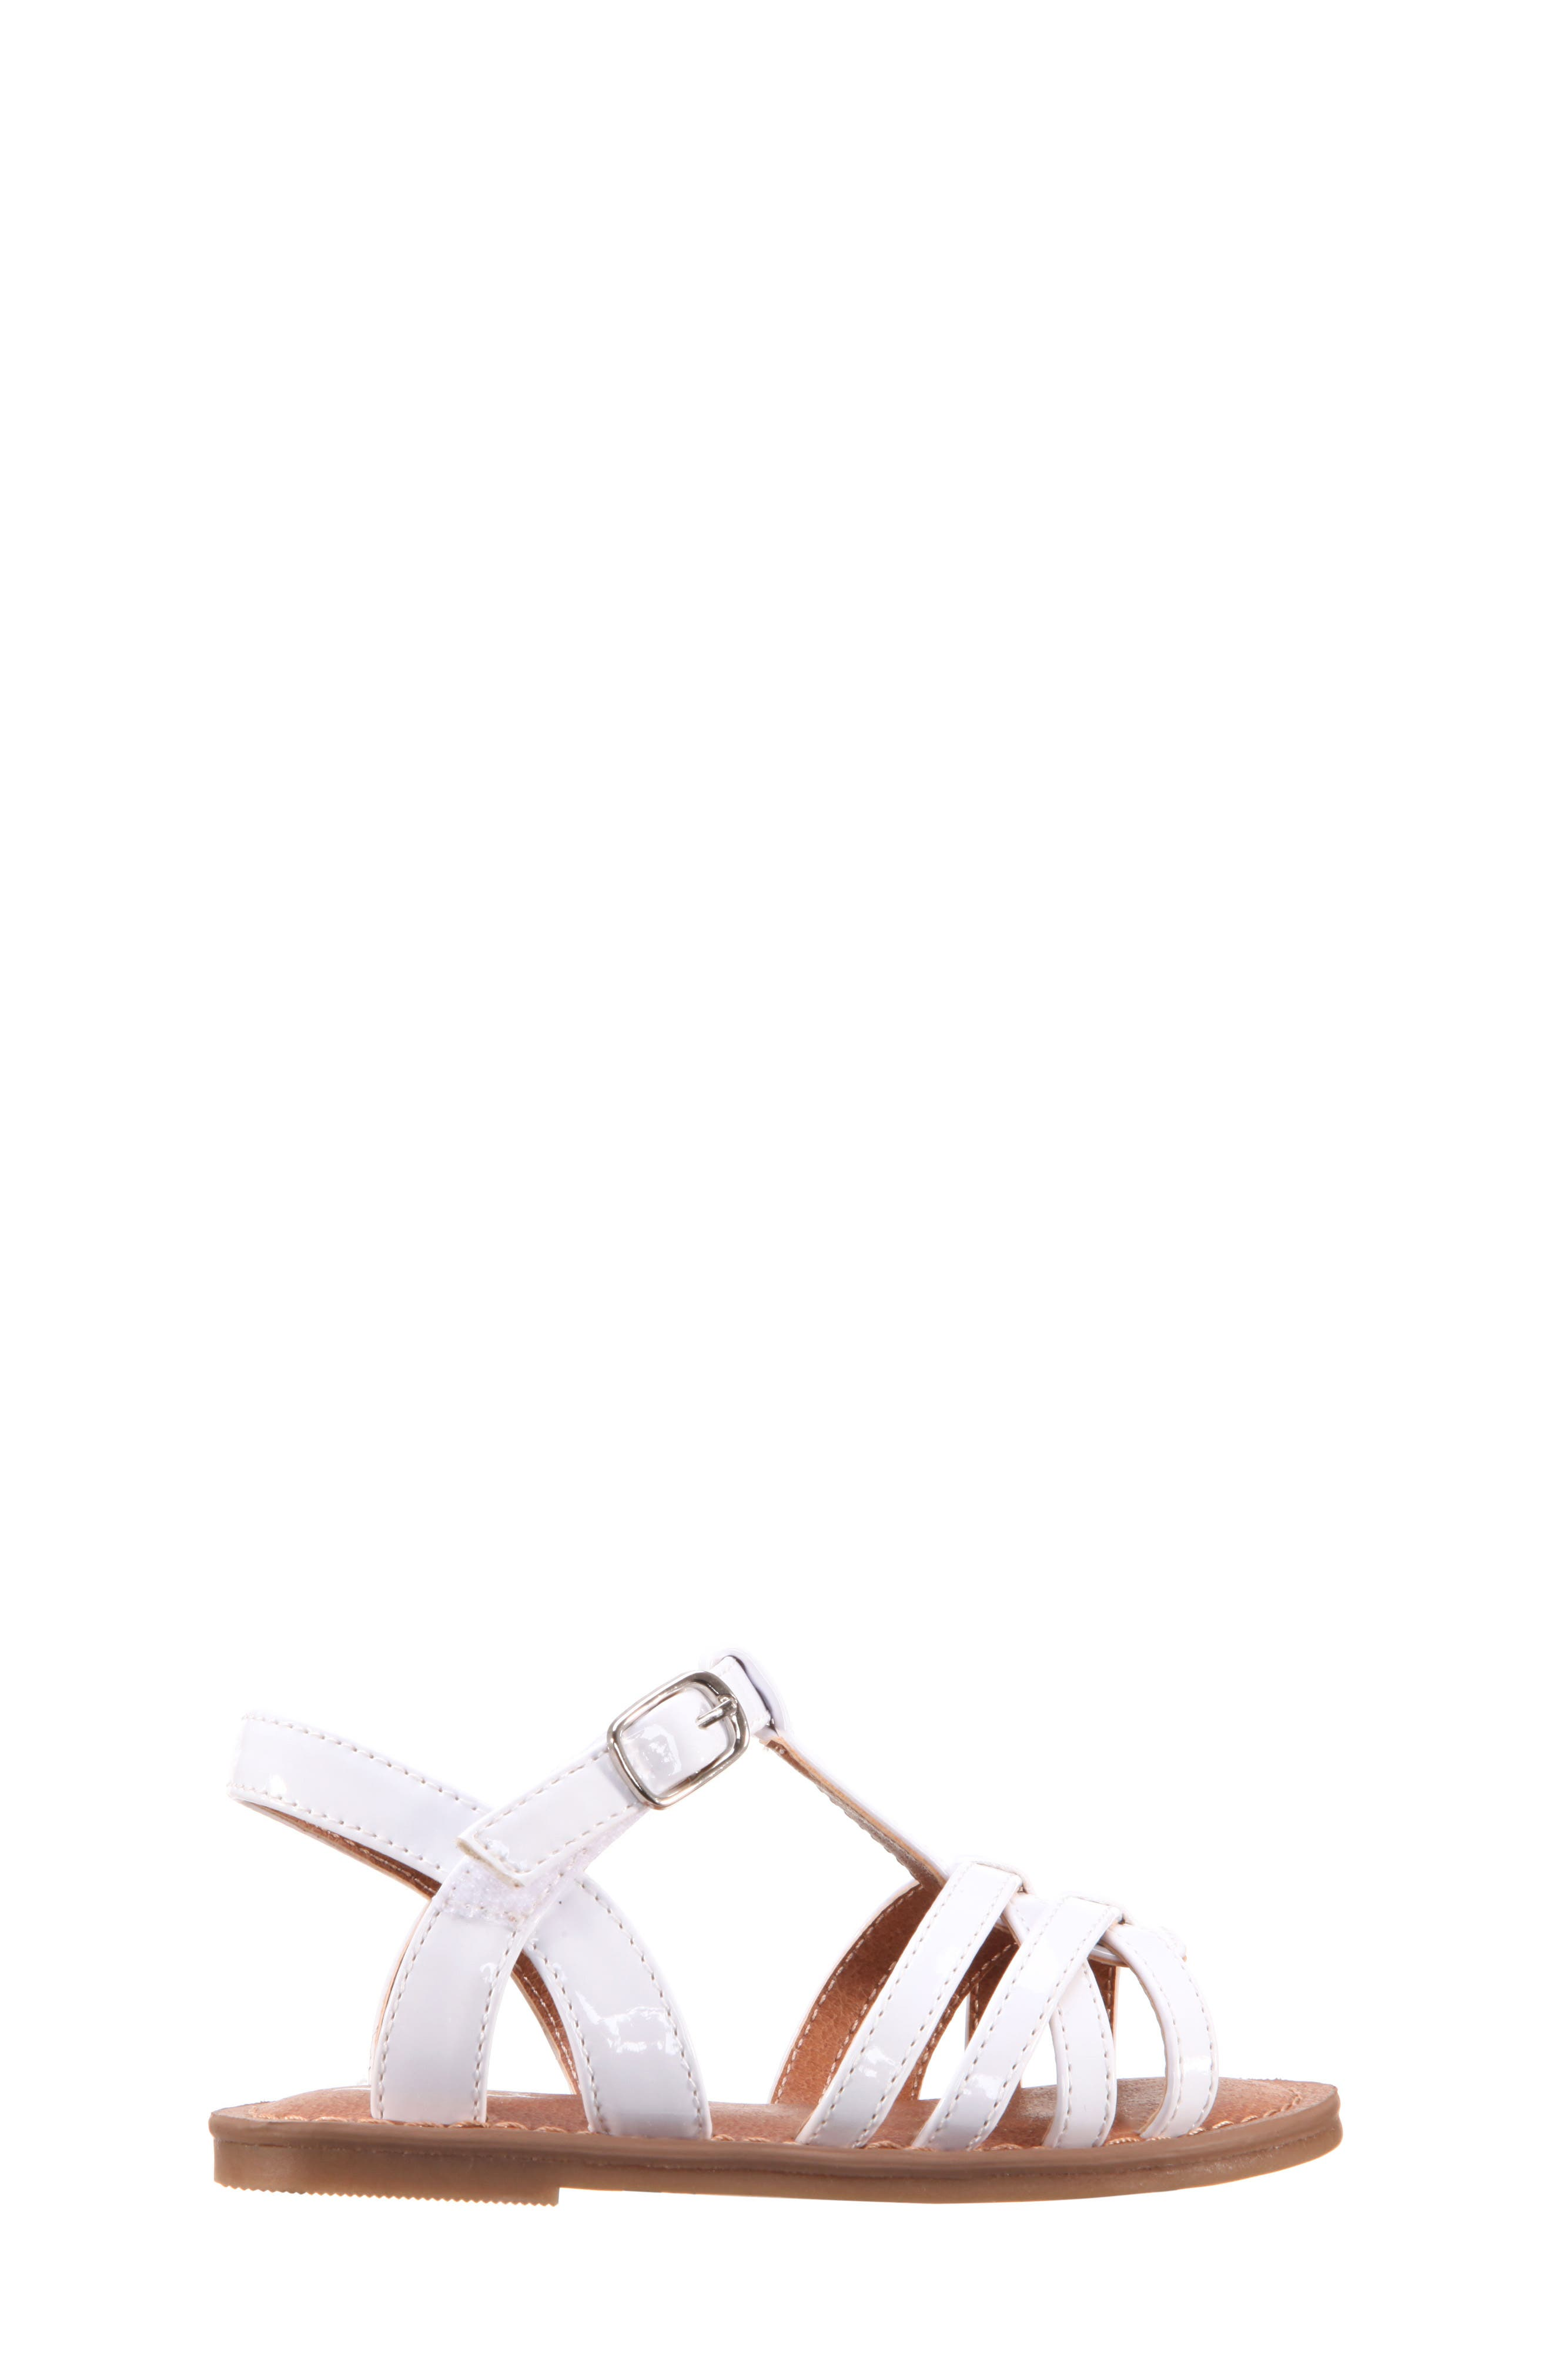 Thereasa Ankle Strap Sandal,                             Alternate thumbnail 3, color,                             White Patent